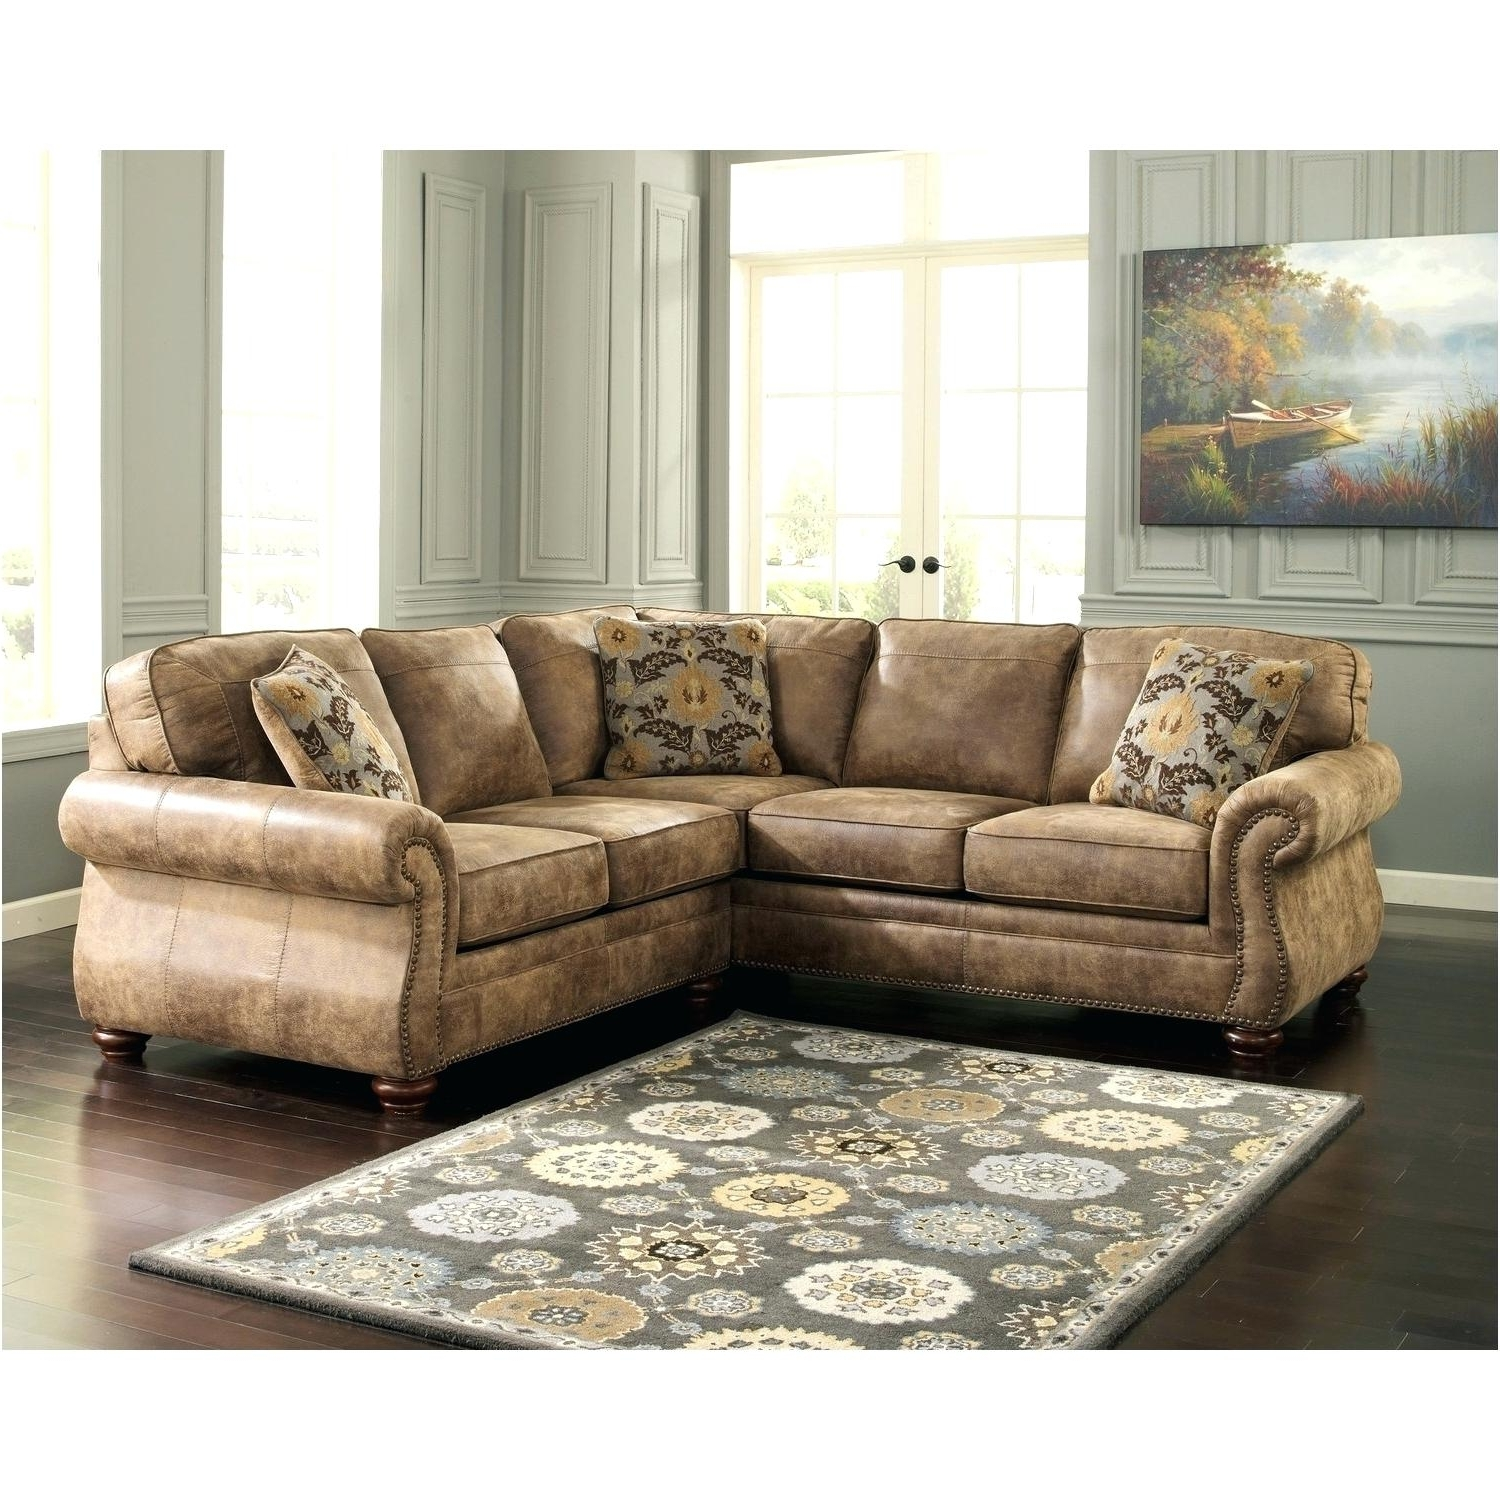 Preferred Sectionals Sofa S Sofas Ikea For Sale Sectional Small Spaces Throughout Sectional Sofas In Toronto (View 11 of 20)